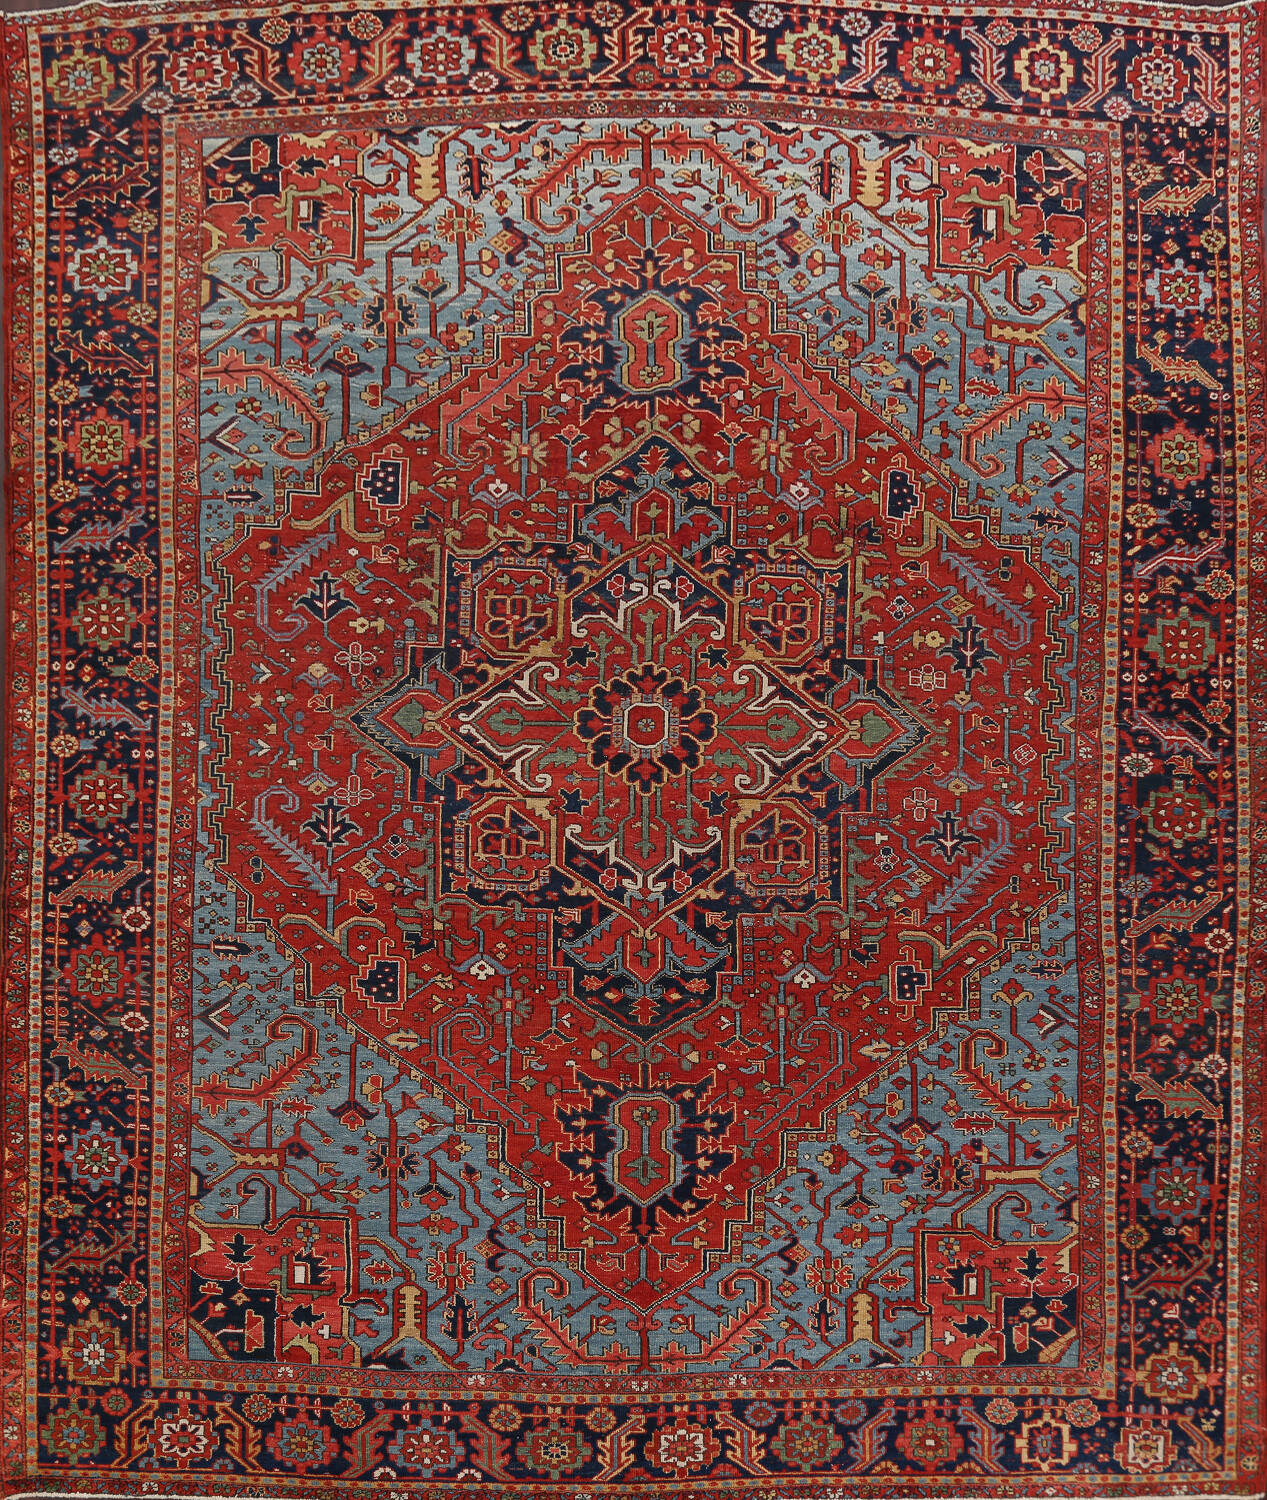 Pre-1900 Antique Vegetable Dye Heriz Serapi Persian Rug 12x14 image 1